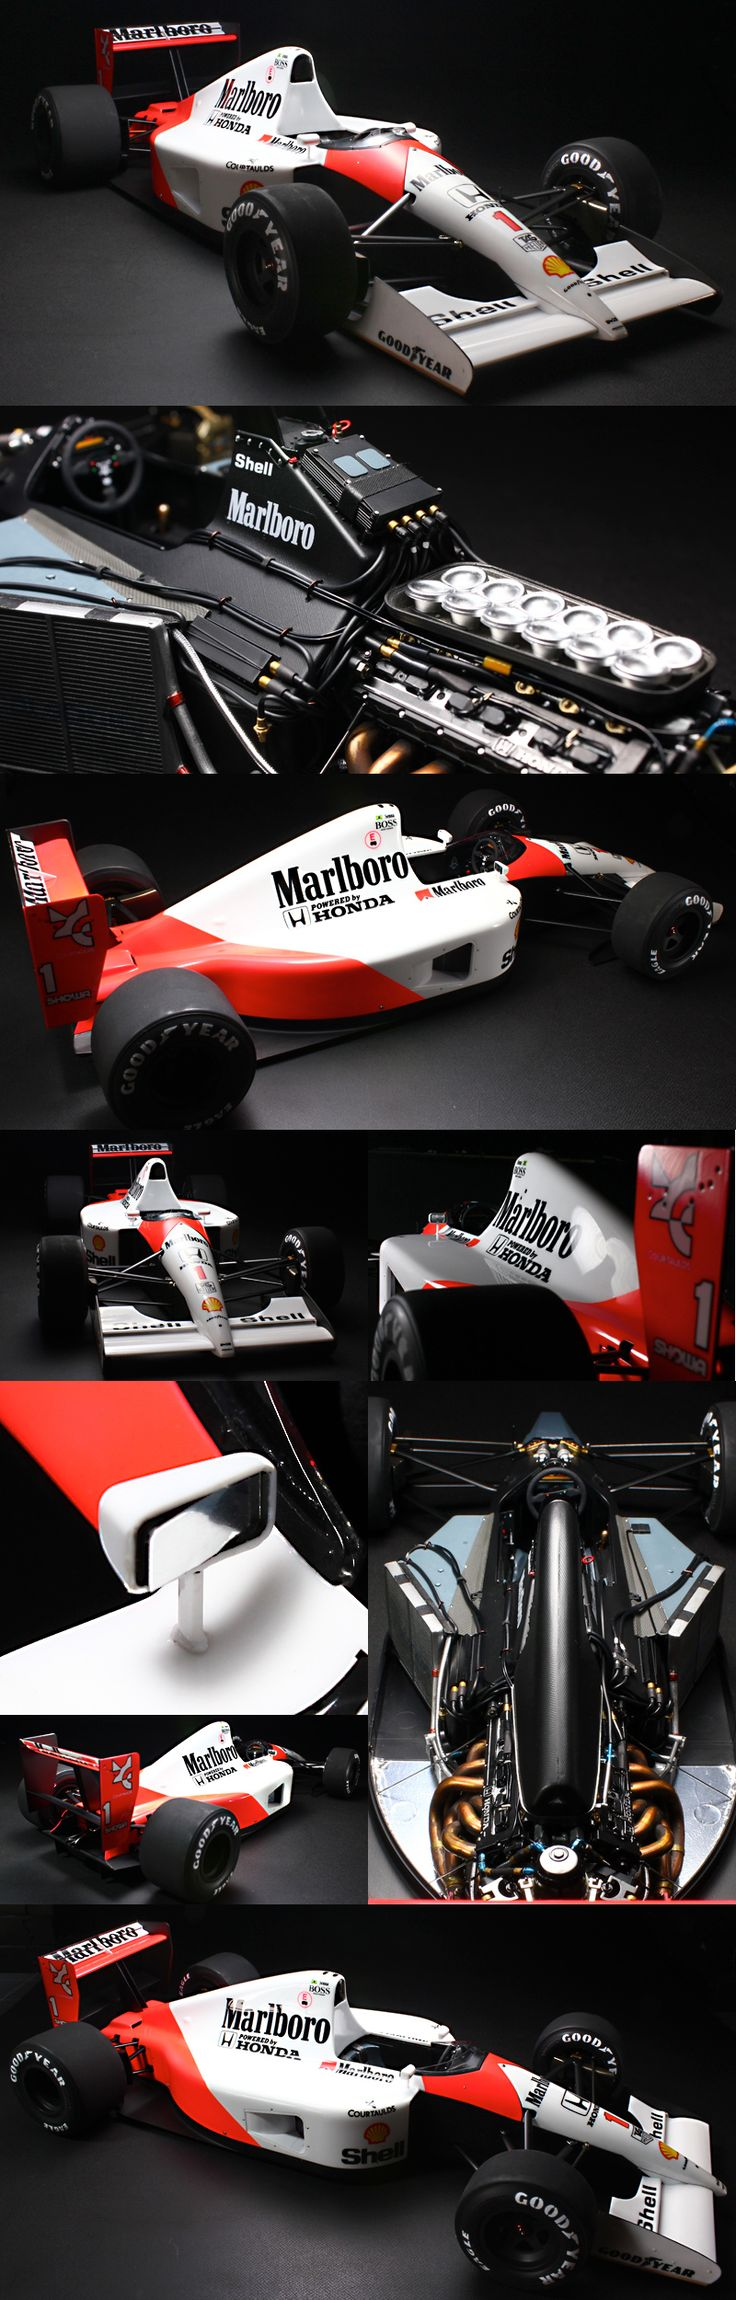 Tamiya 1/12 McLaren MP4/6 Honda, if it didn't say 1/12th you would think this is full size